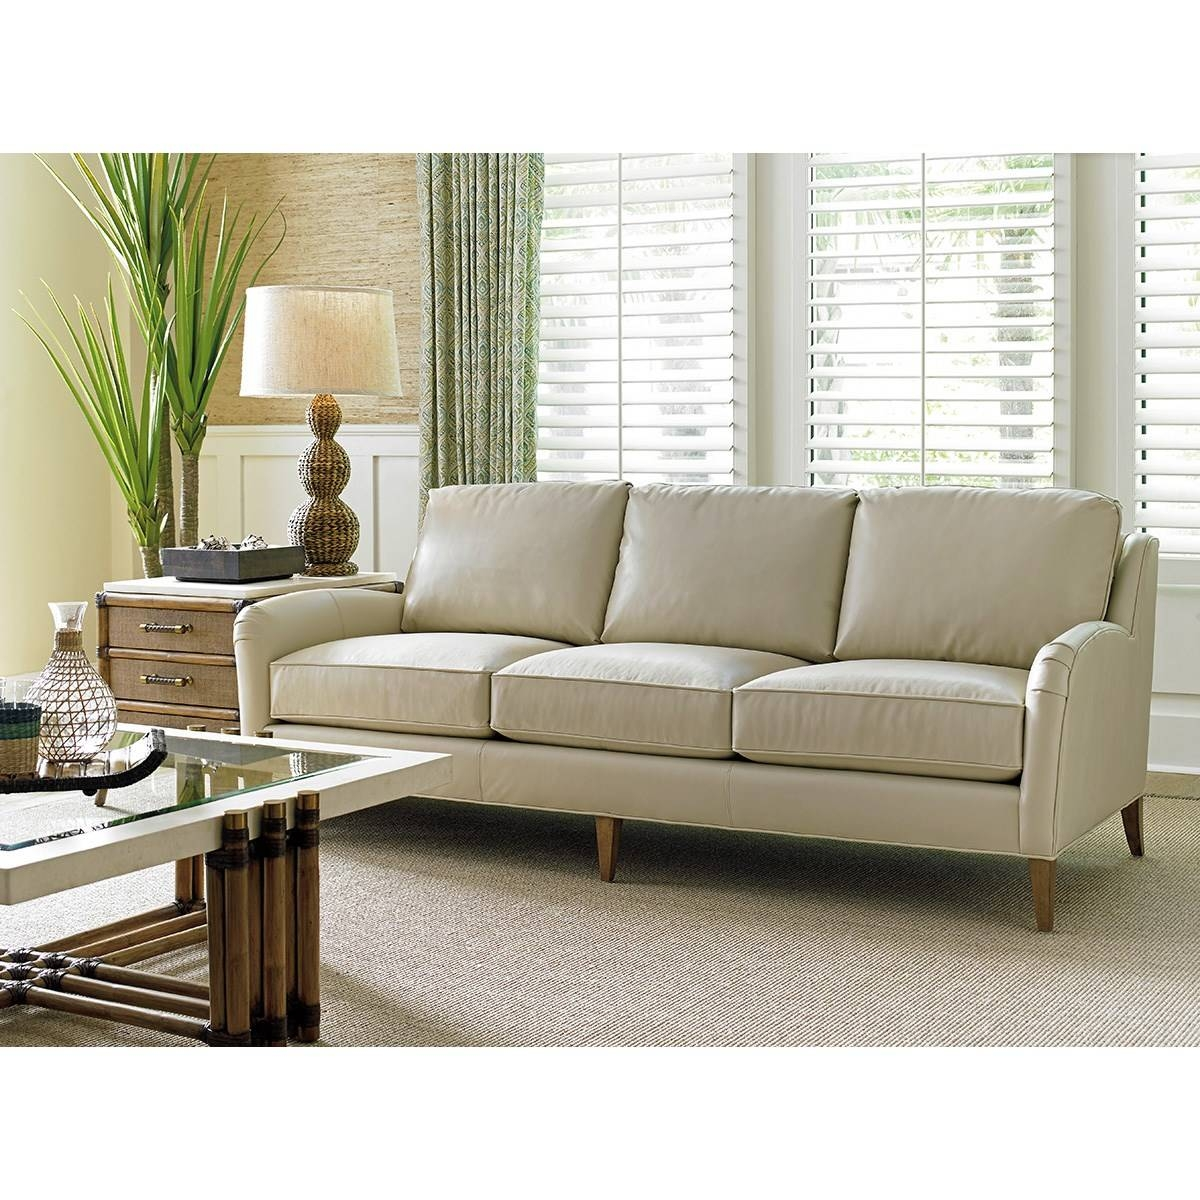 Tommy Bahama 01 Ll7287 33 52 Twin Palms Coconut Grove Leather Sofa Regarding Ivory Leather Sofas (View 27 of 30)